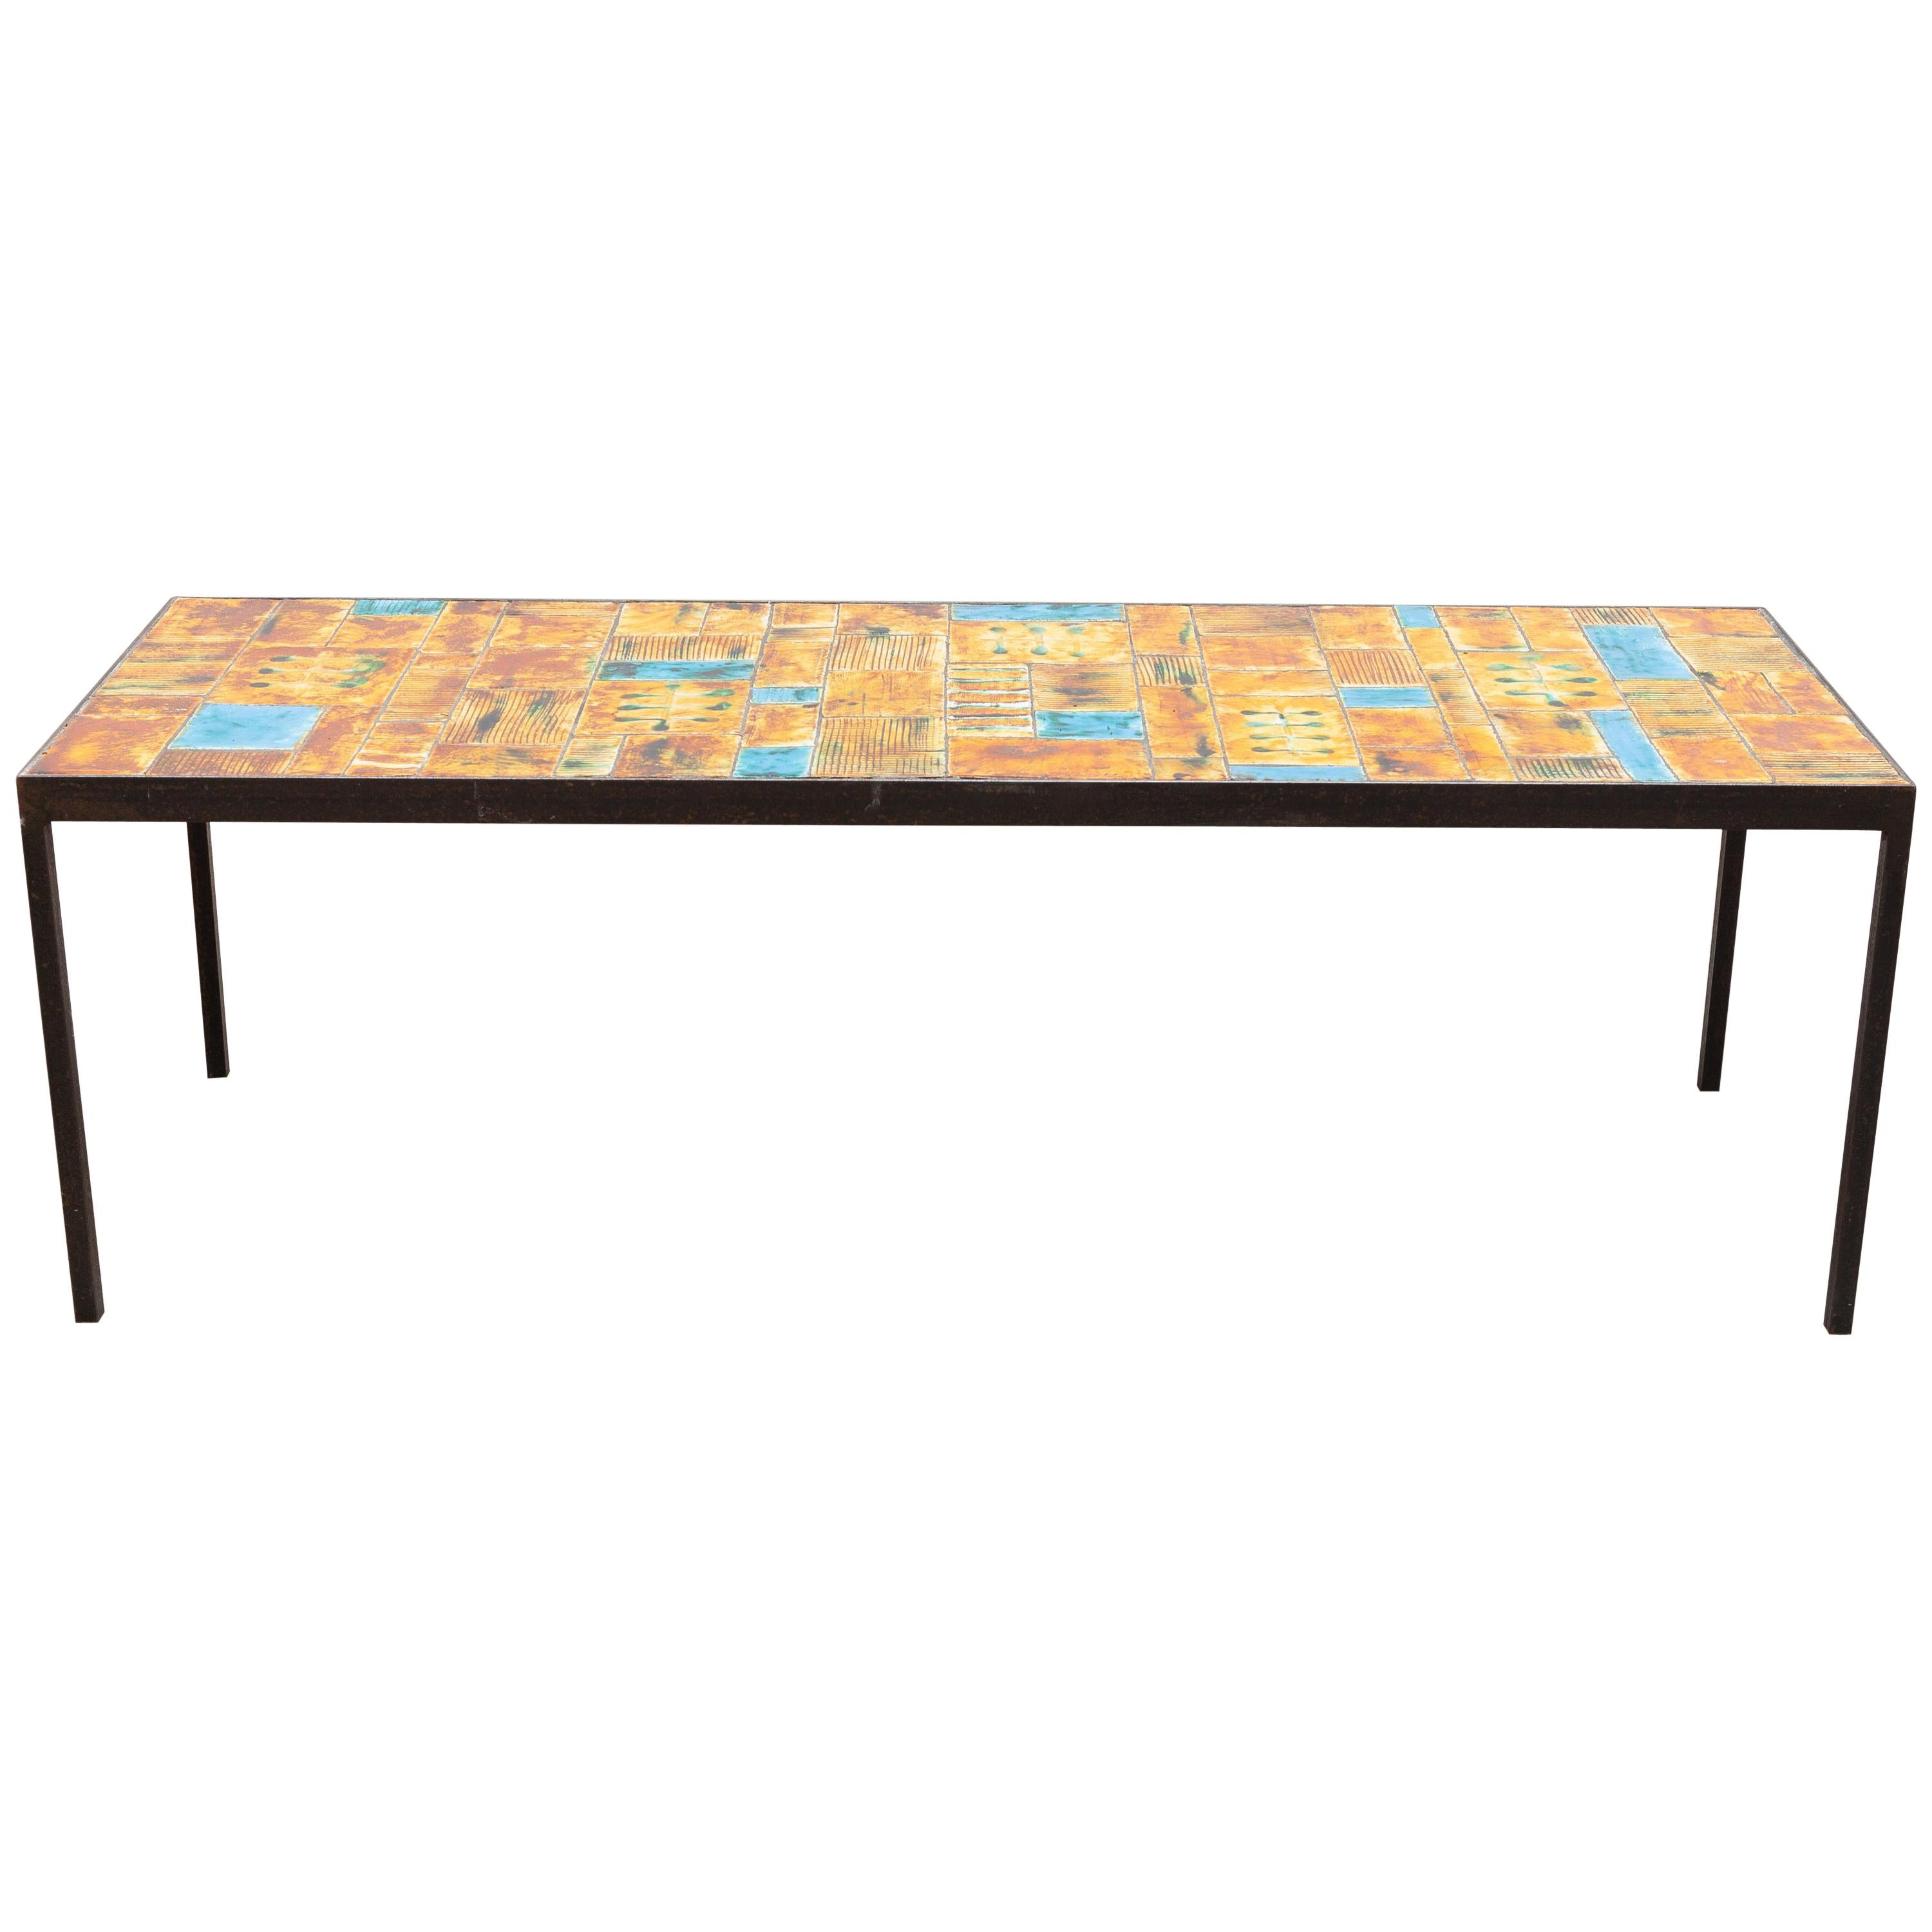 Large Rectangular Tile Coffee Table Designed by Vallauris, France, 1960s